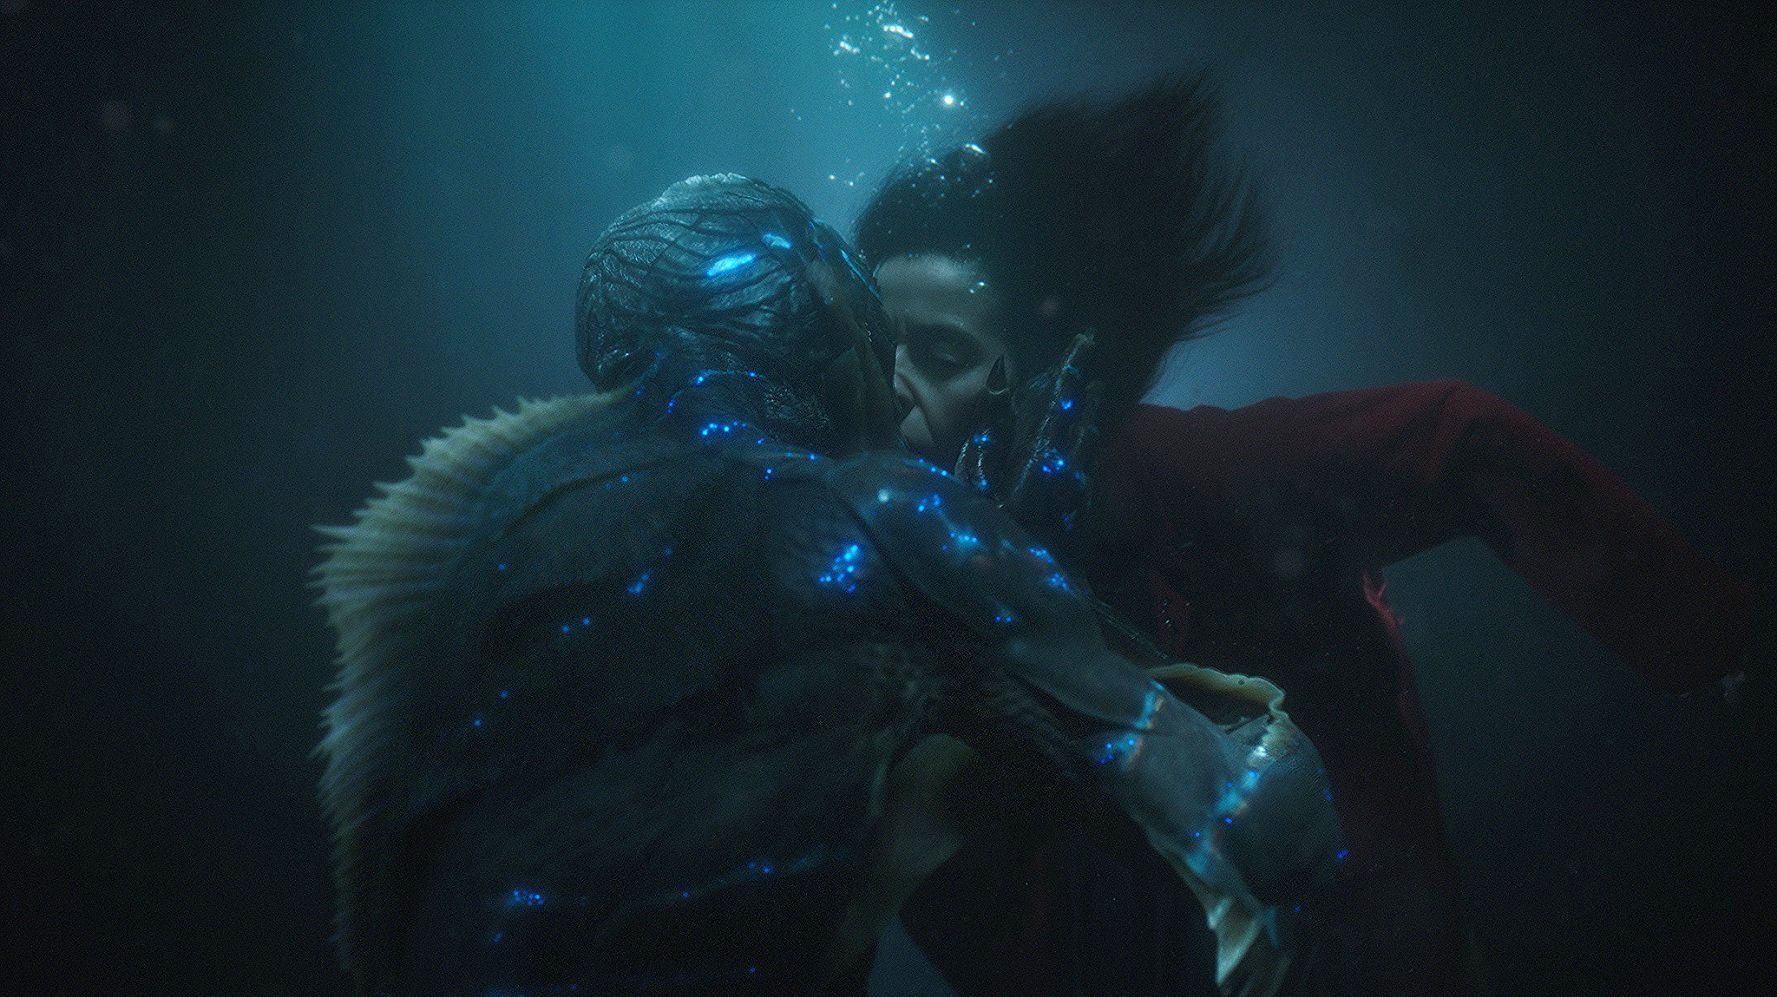 Director and co-writer, Guillermo del Toro, said the idea for The Shape of Water came to him when he was just six-years-old.